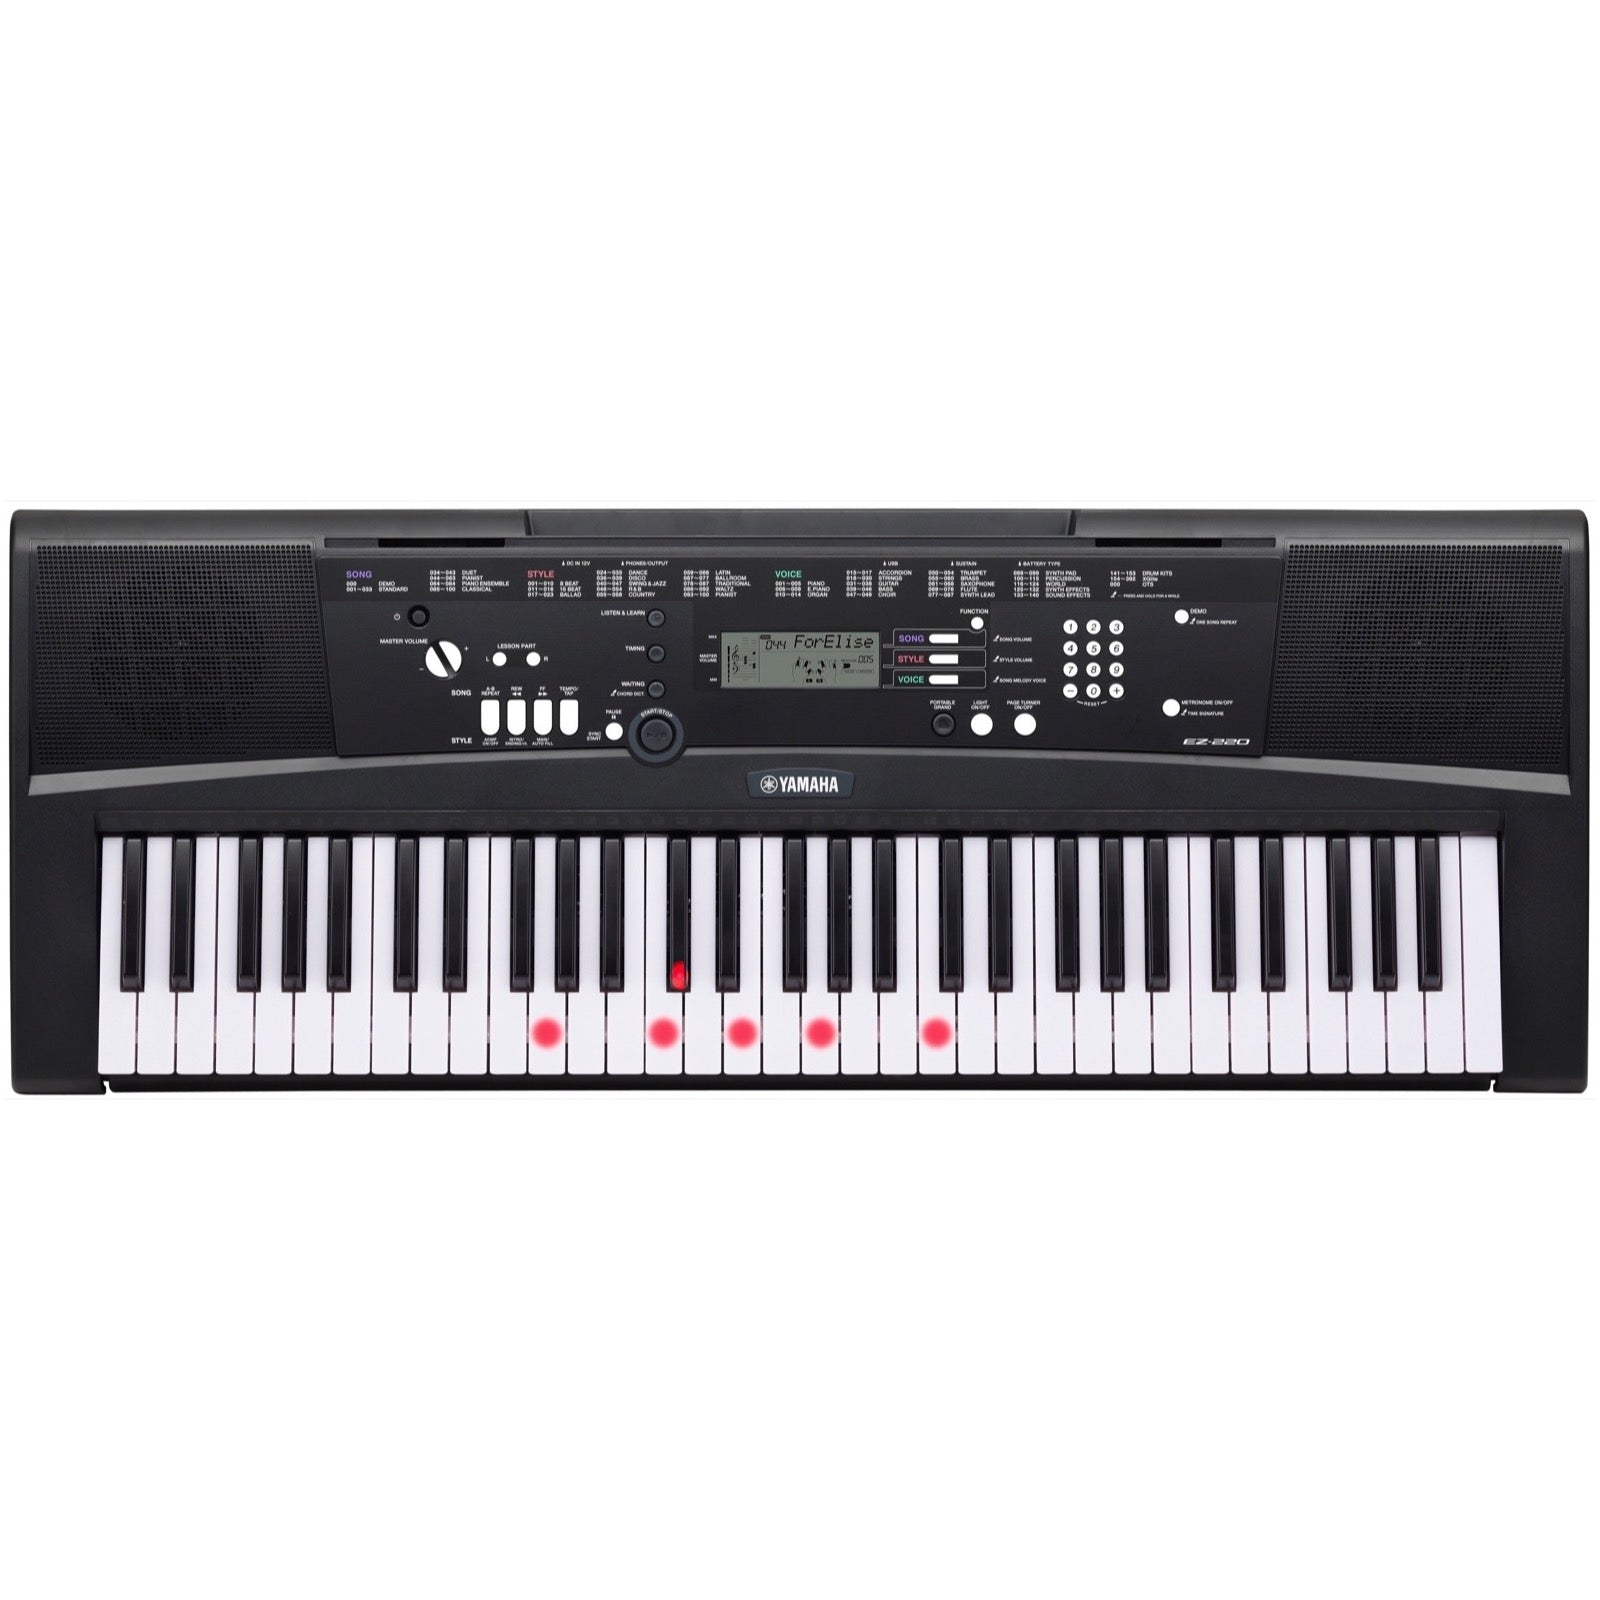 Yamaha EZ-220 Lighted Keyboard, 61-Key, Standard